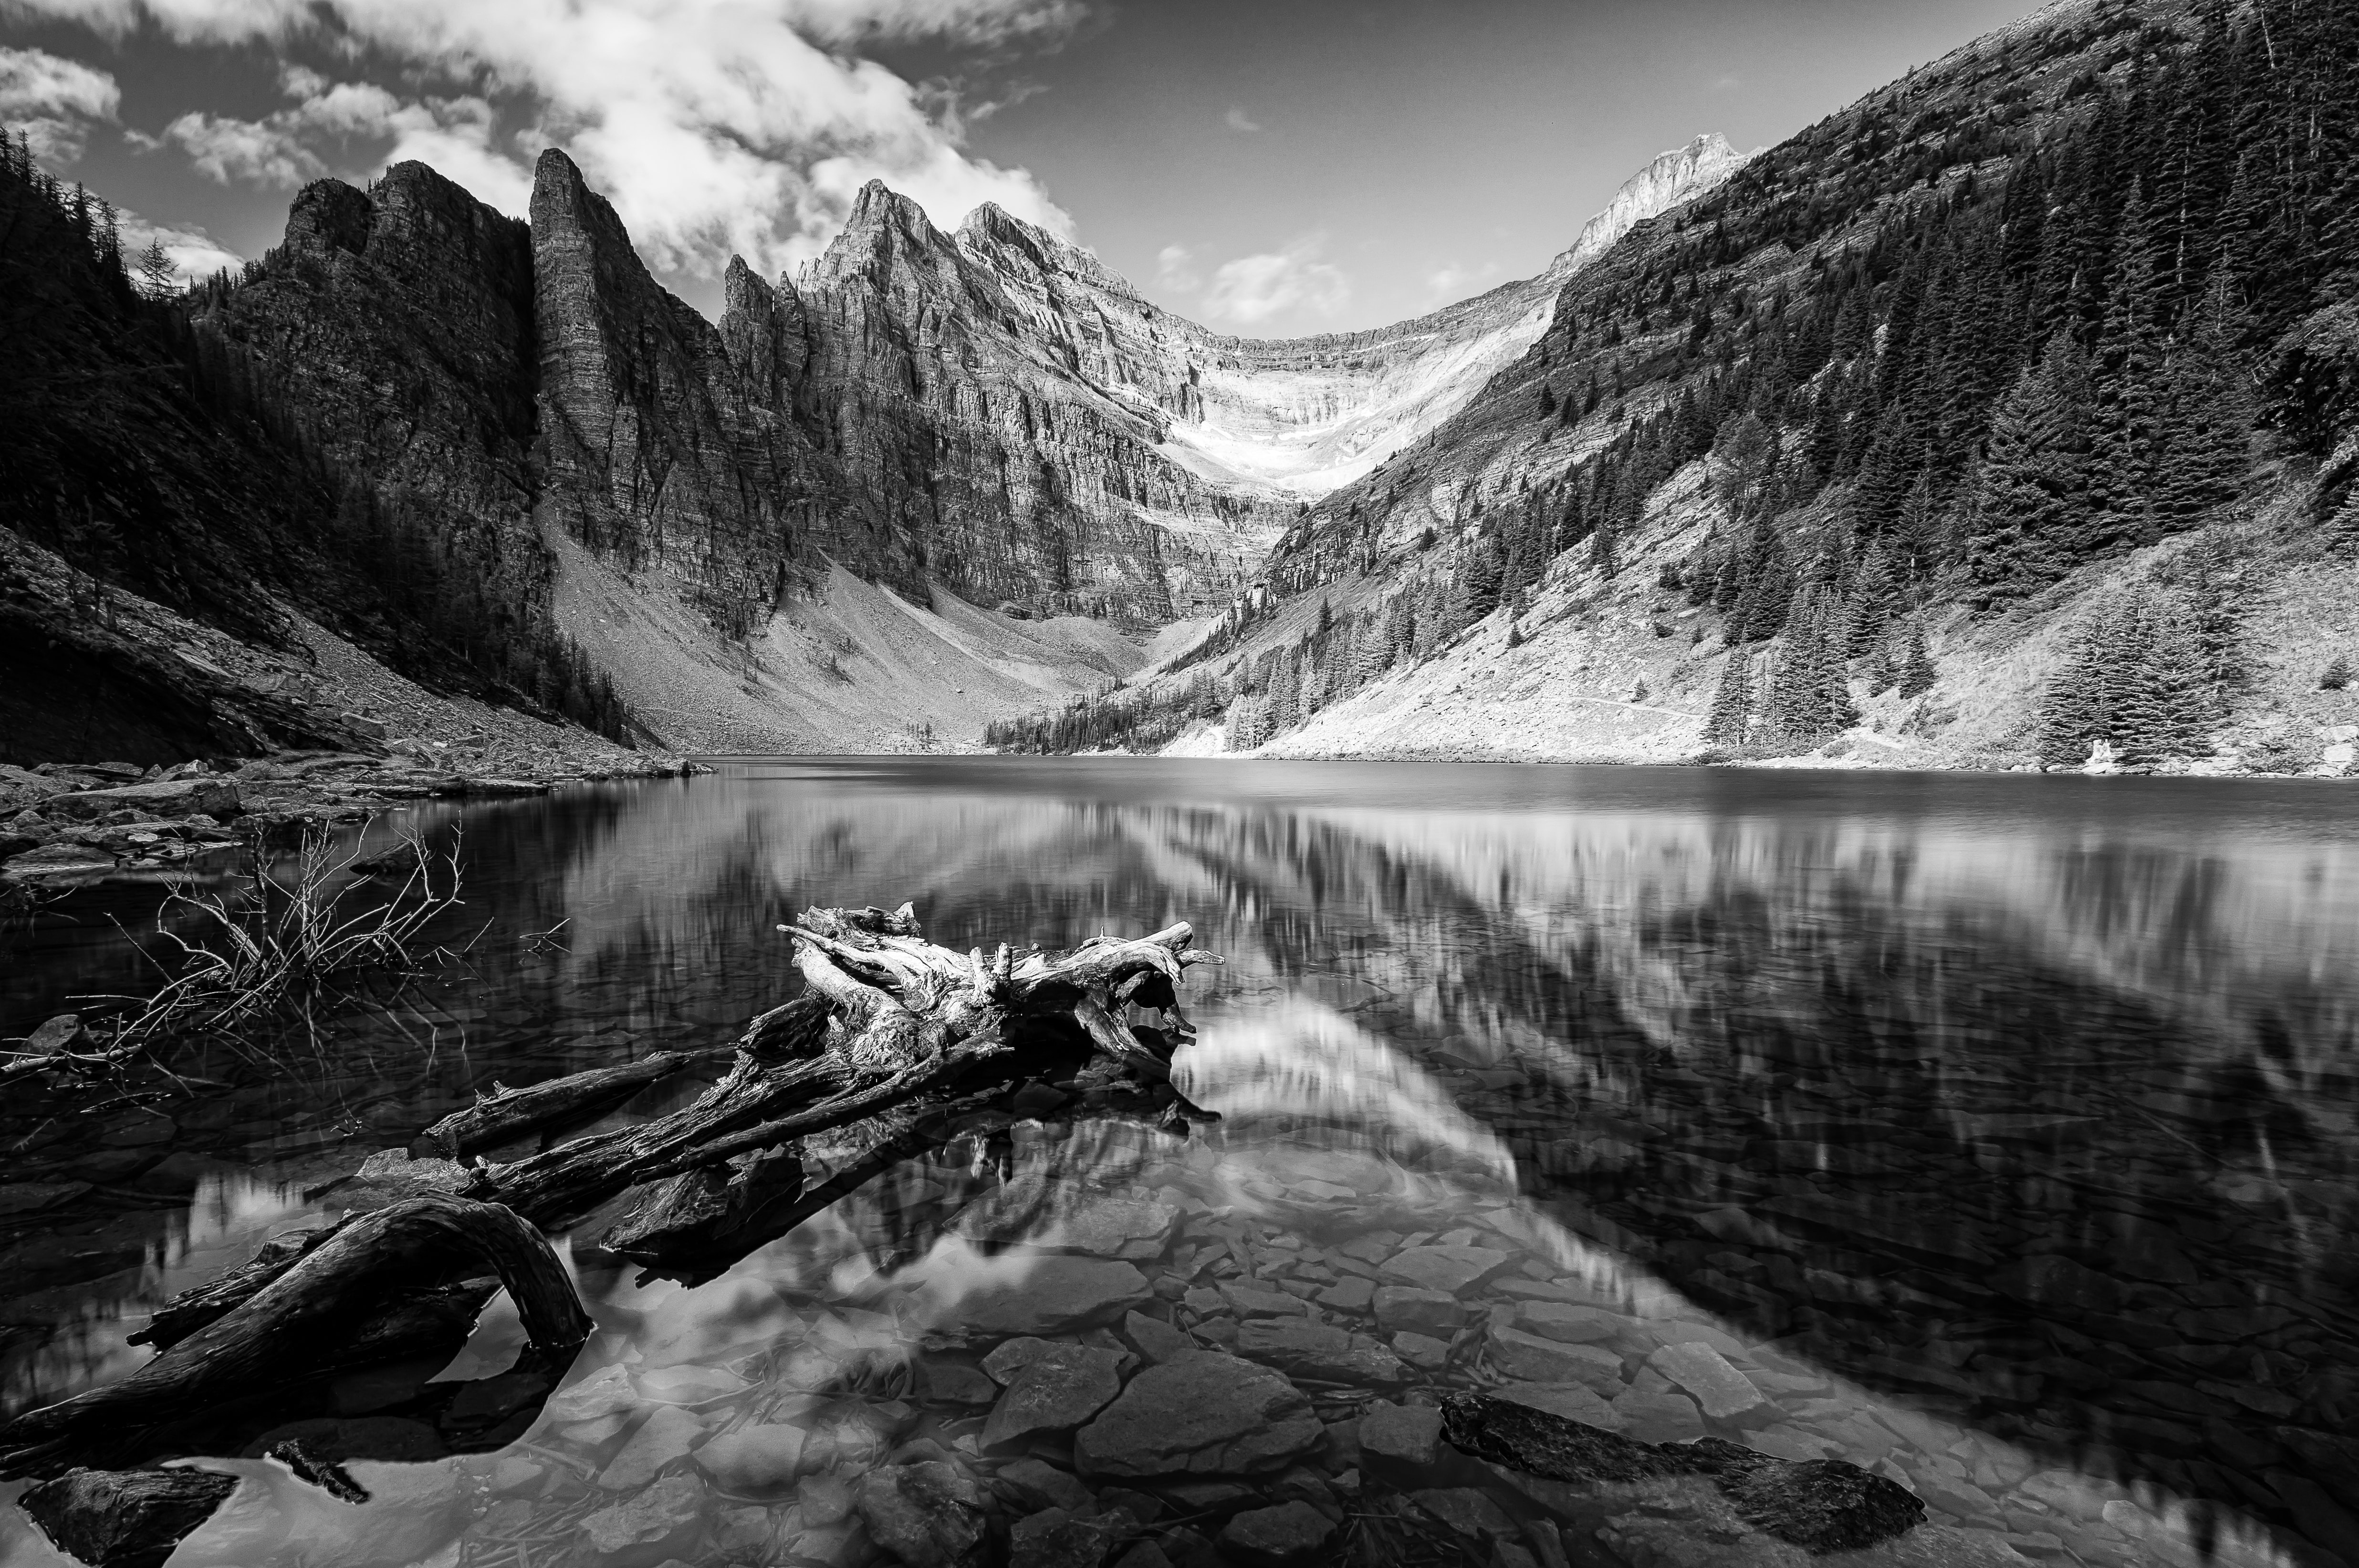 grayscale photo of calm body of water